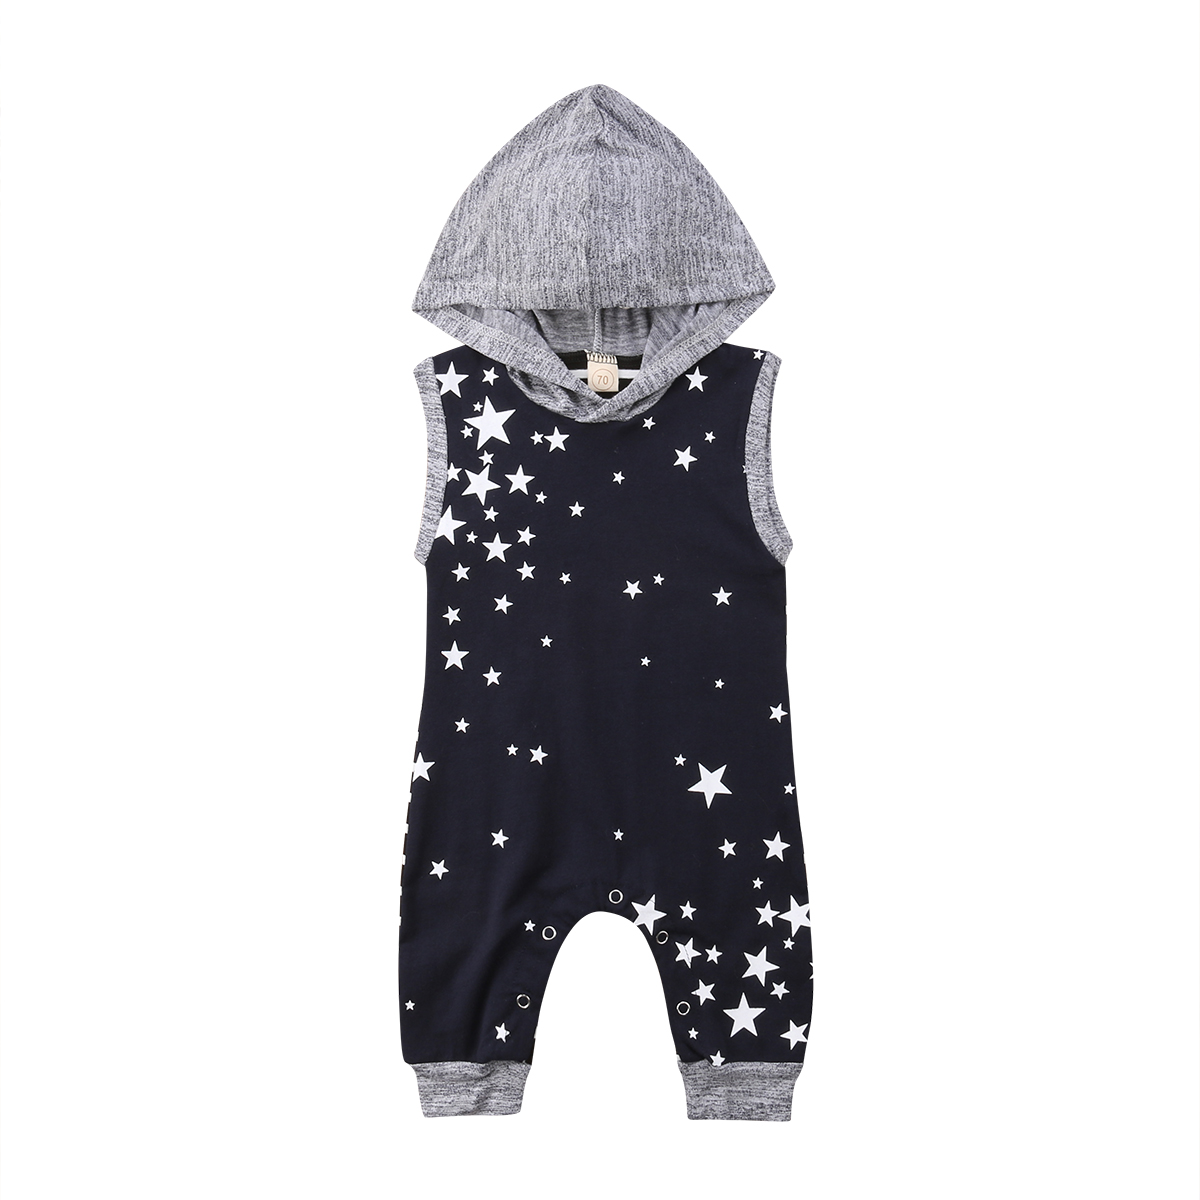 Newborn Baby Boy Clothes Hooded Sleeveless Top Romper Jumpsuit Sunsuit Star Printed Outfit Sunsuit Baby Boy 0-24M